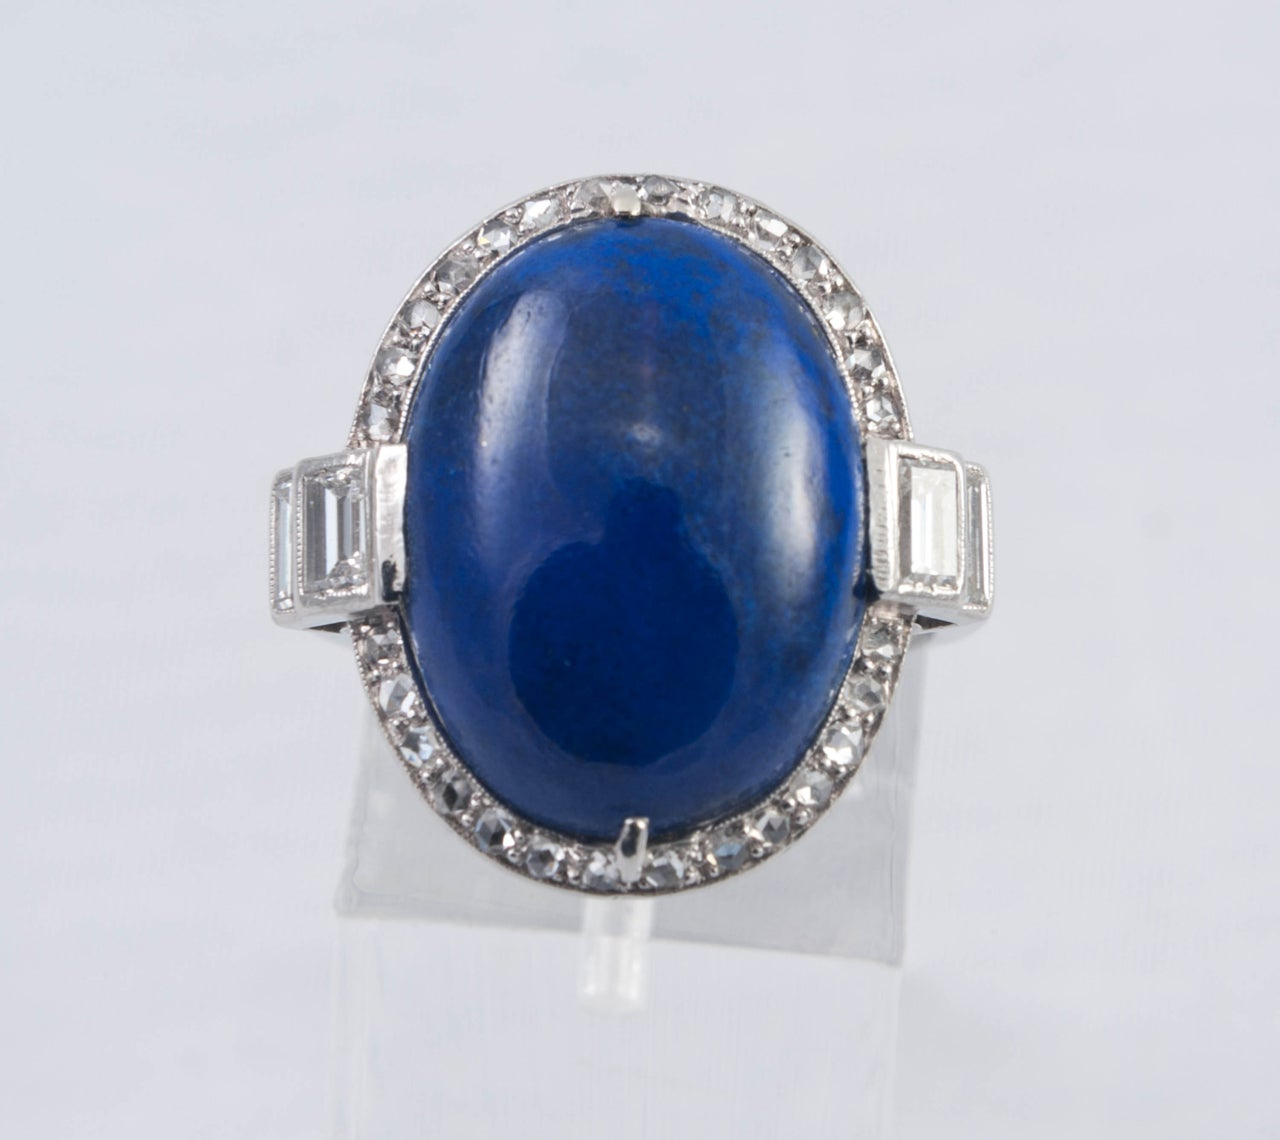 Cabouchon cut Lapis Lazuli ring surrounded by mixed cut small Diamonds and Baguettes set in Platinum ( tested ). It is engraved under the bezel with a fine reeded shank